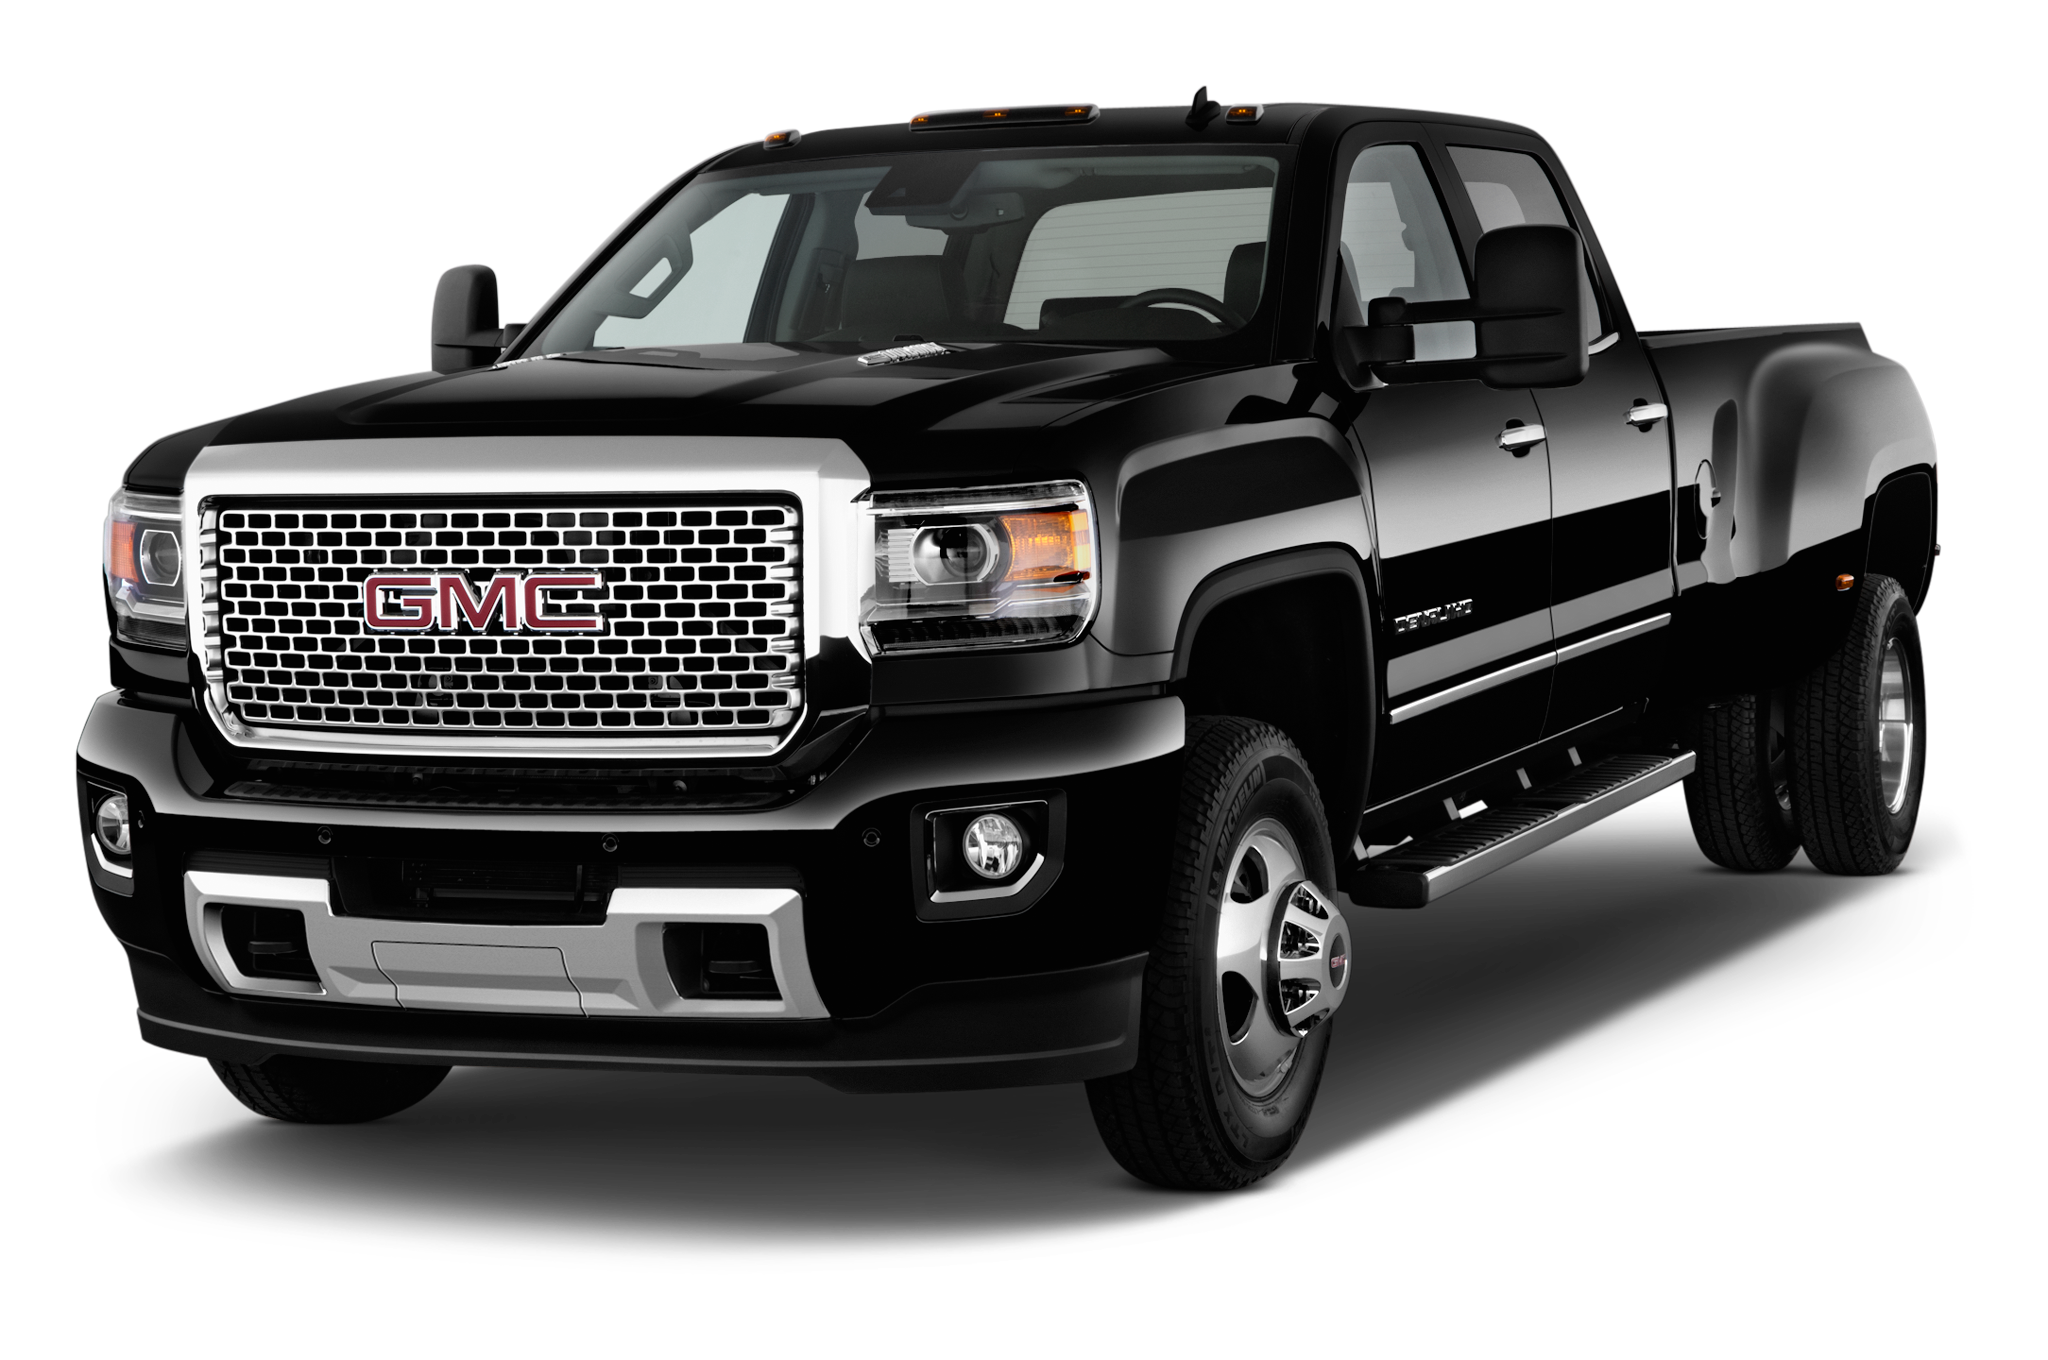 2015 gmc sierra 3500 denali hd 4wd crew cab long box drw overview msn autos. Black Bedroom Furniture Sets. Home Design Ideas